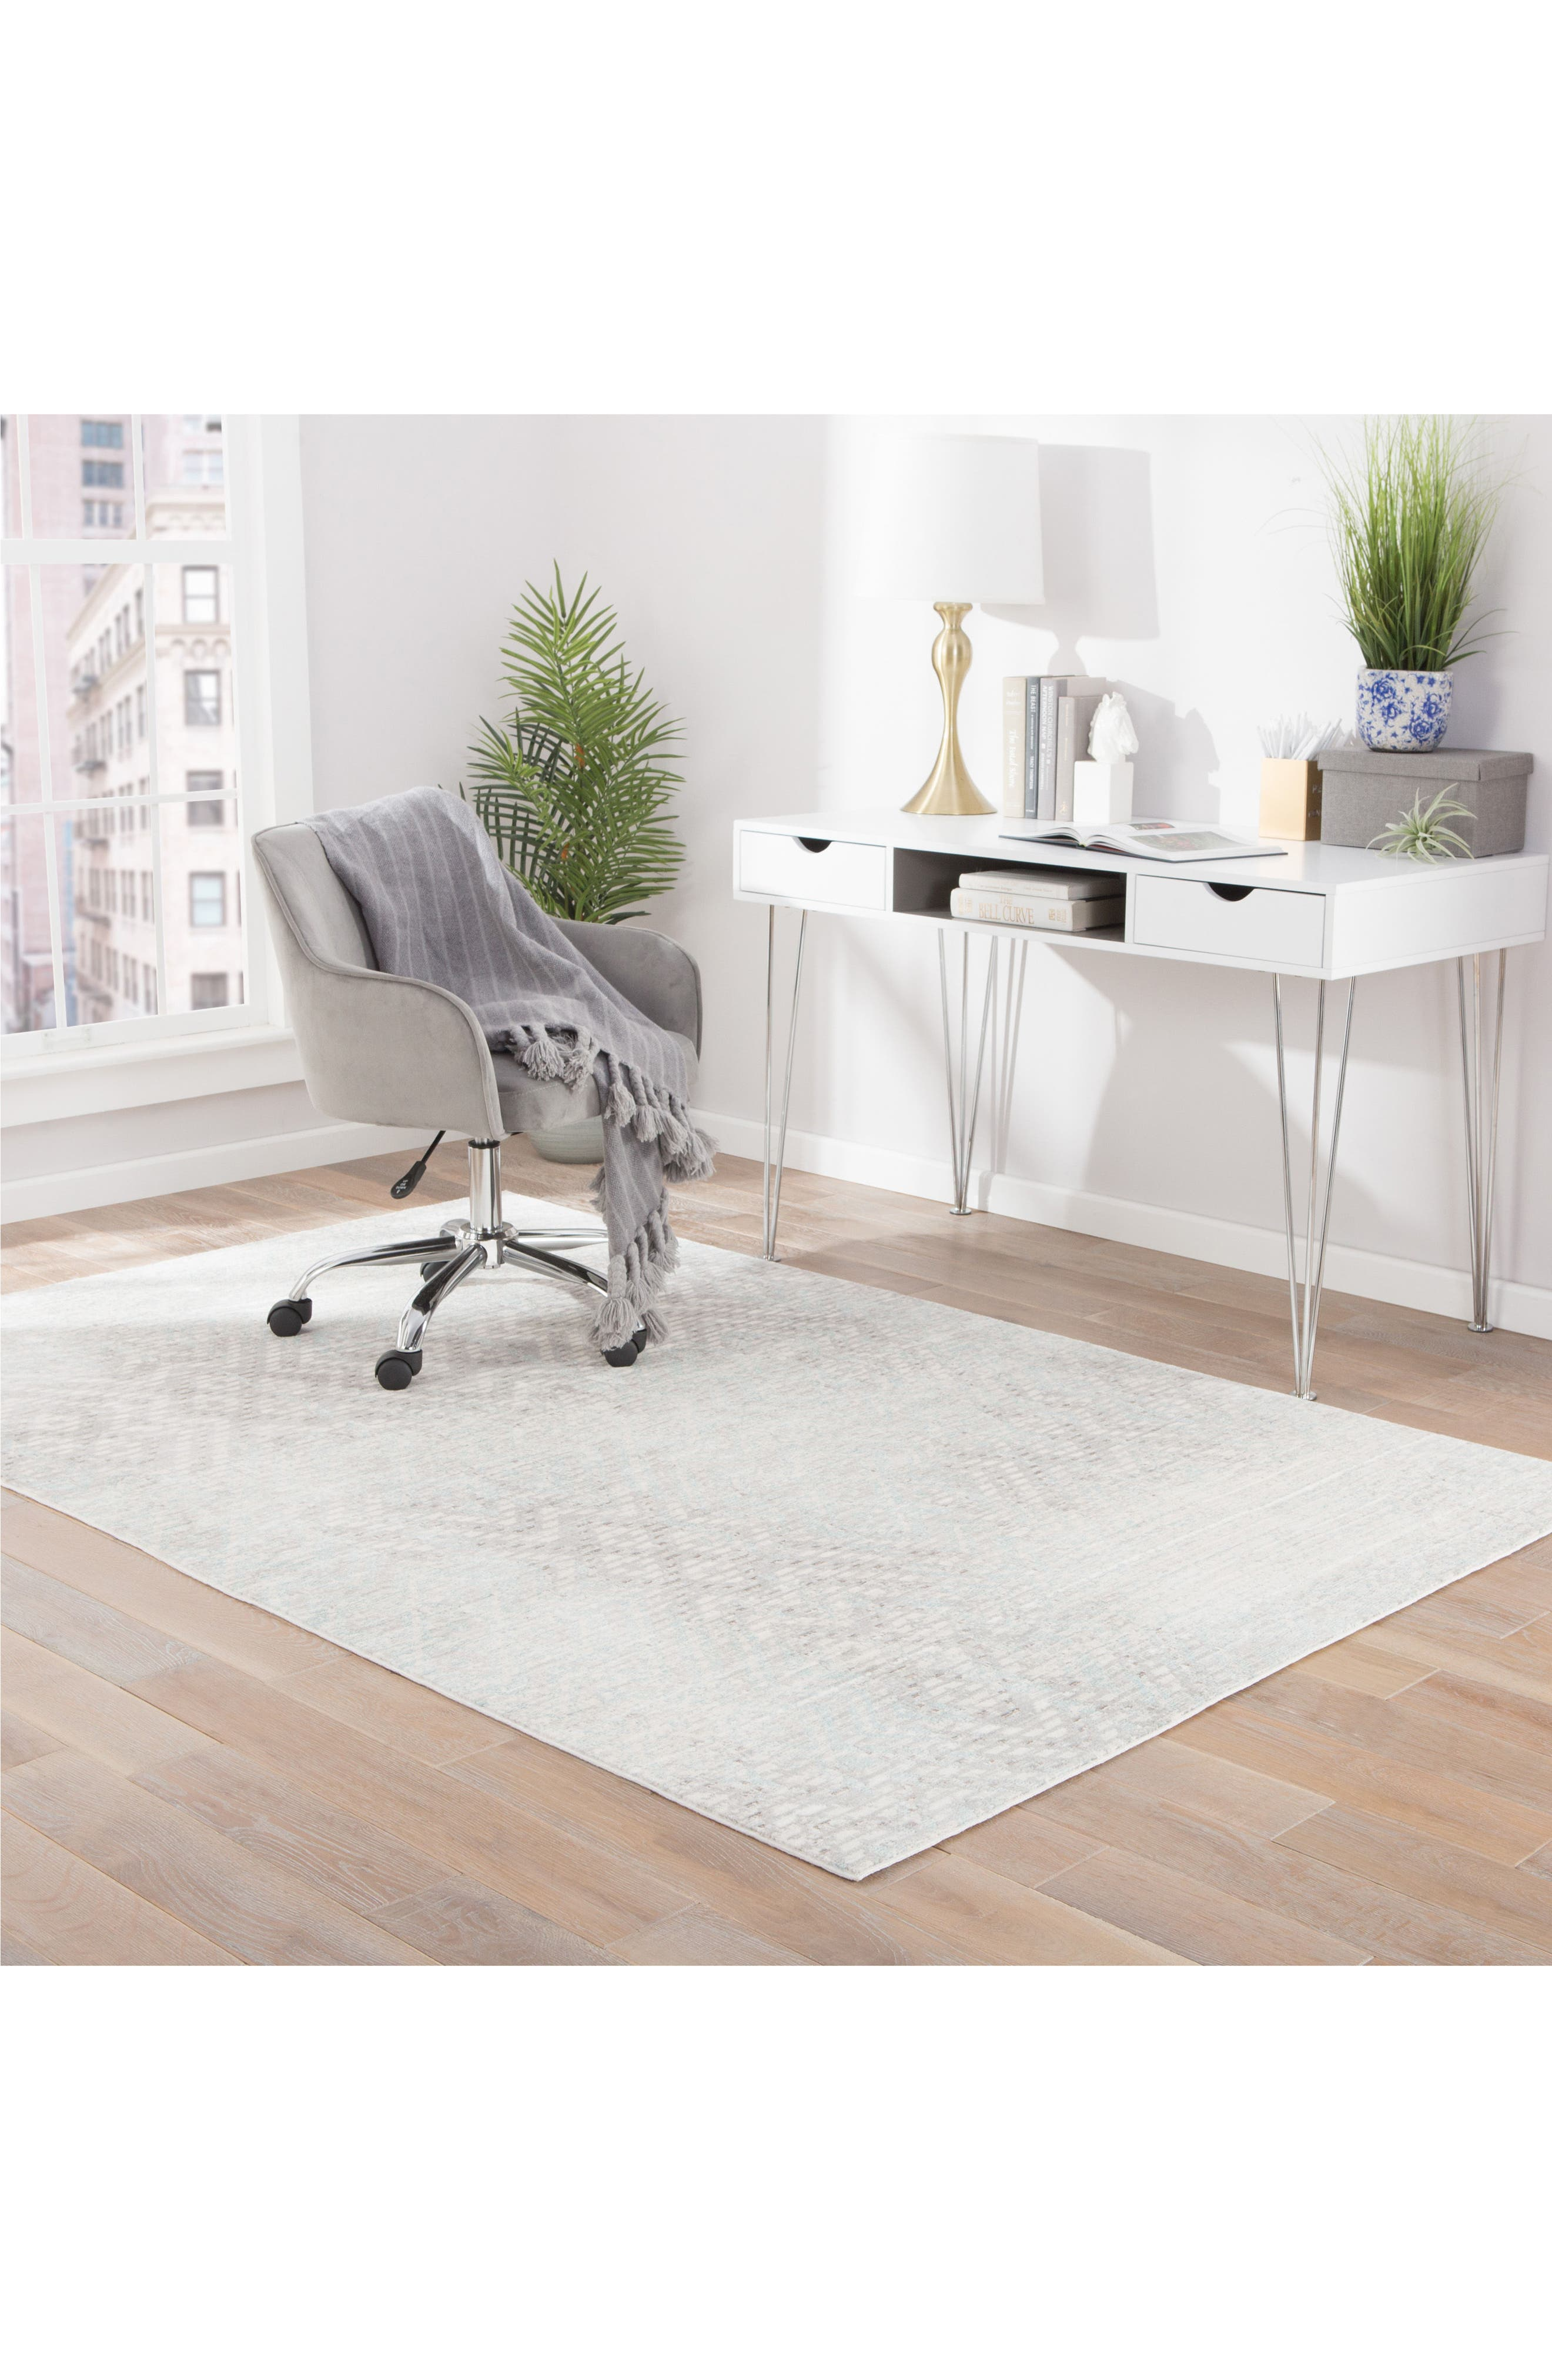 Diamond Interlock Rug,                             Alternate thumbnail 6, color,                             021